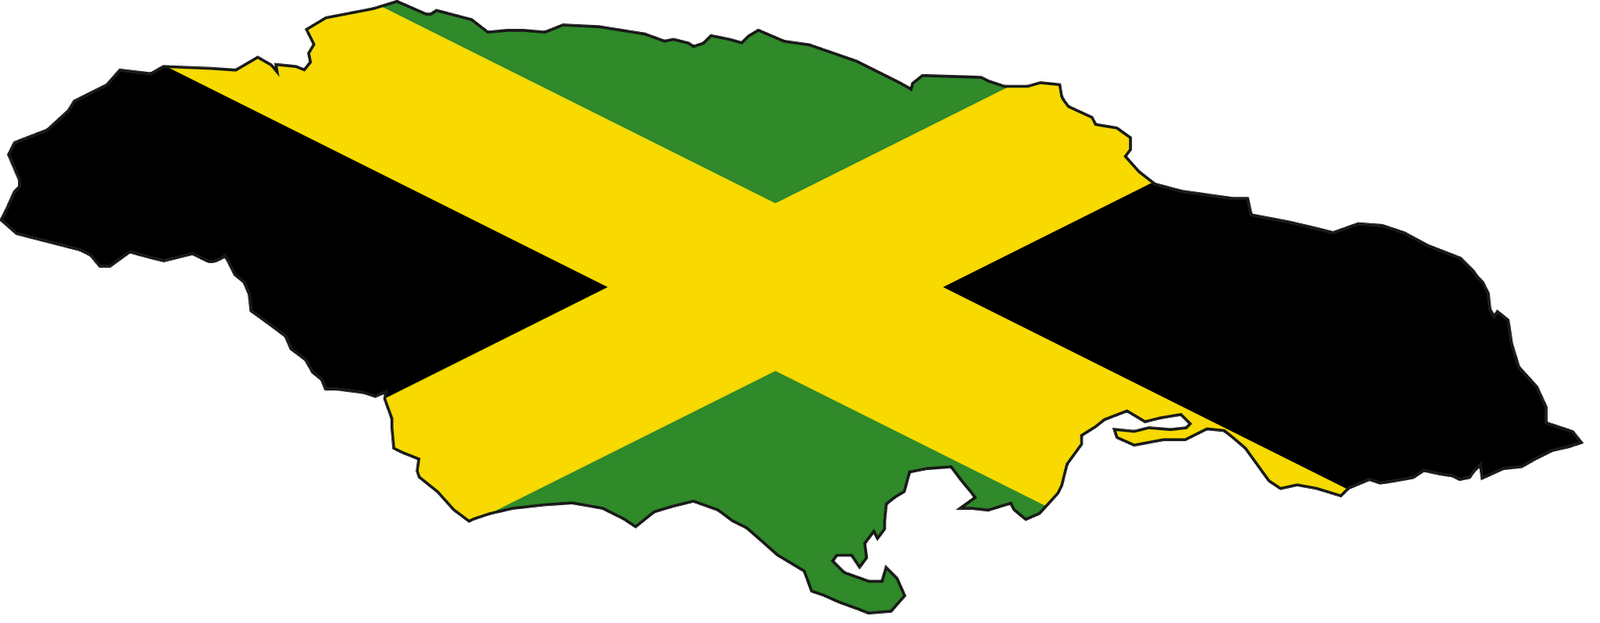 Map Of Jamaican Country With Flag Of Jamaica